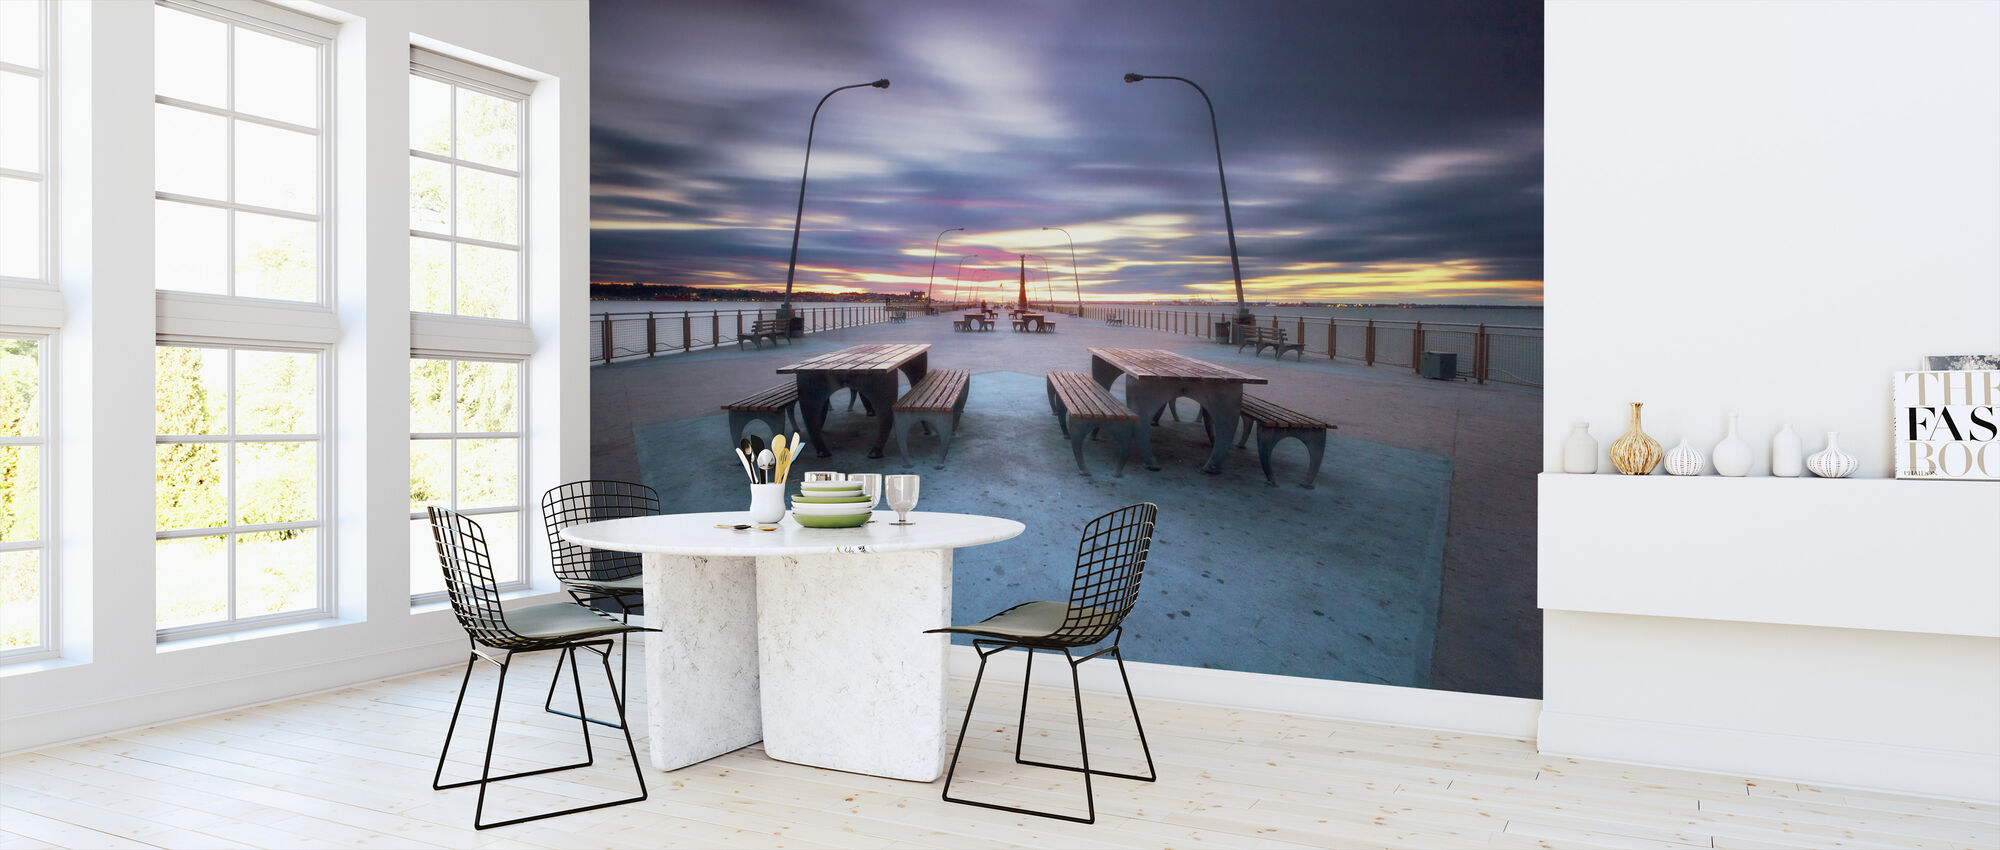 69th Street Pier - Wallpaper - Kitchen